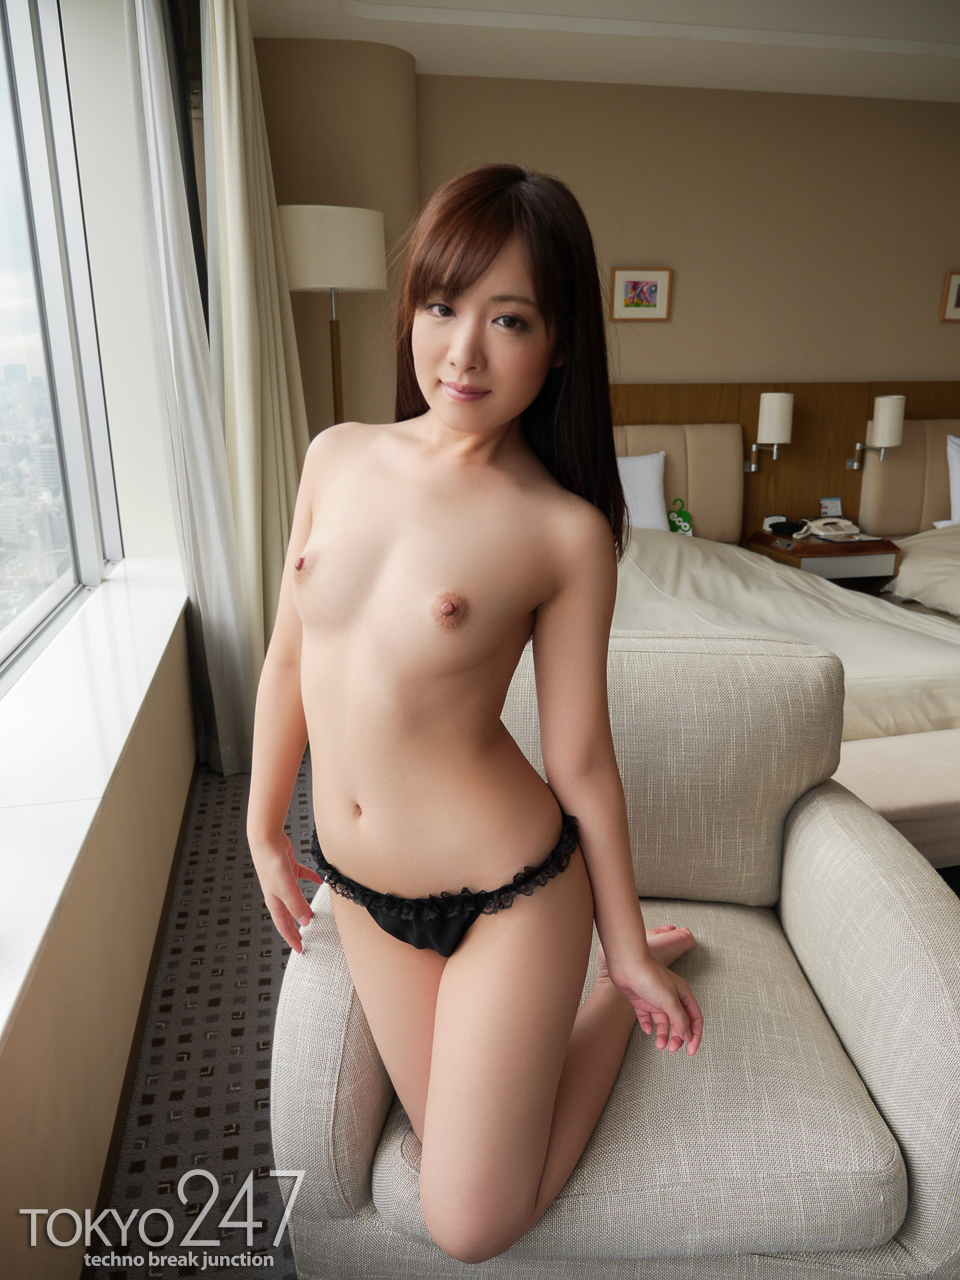 [Maxi-247] Member GIRLS-S MS628 さくらみゆき miyuki [100P68MB] maxi-247 08240